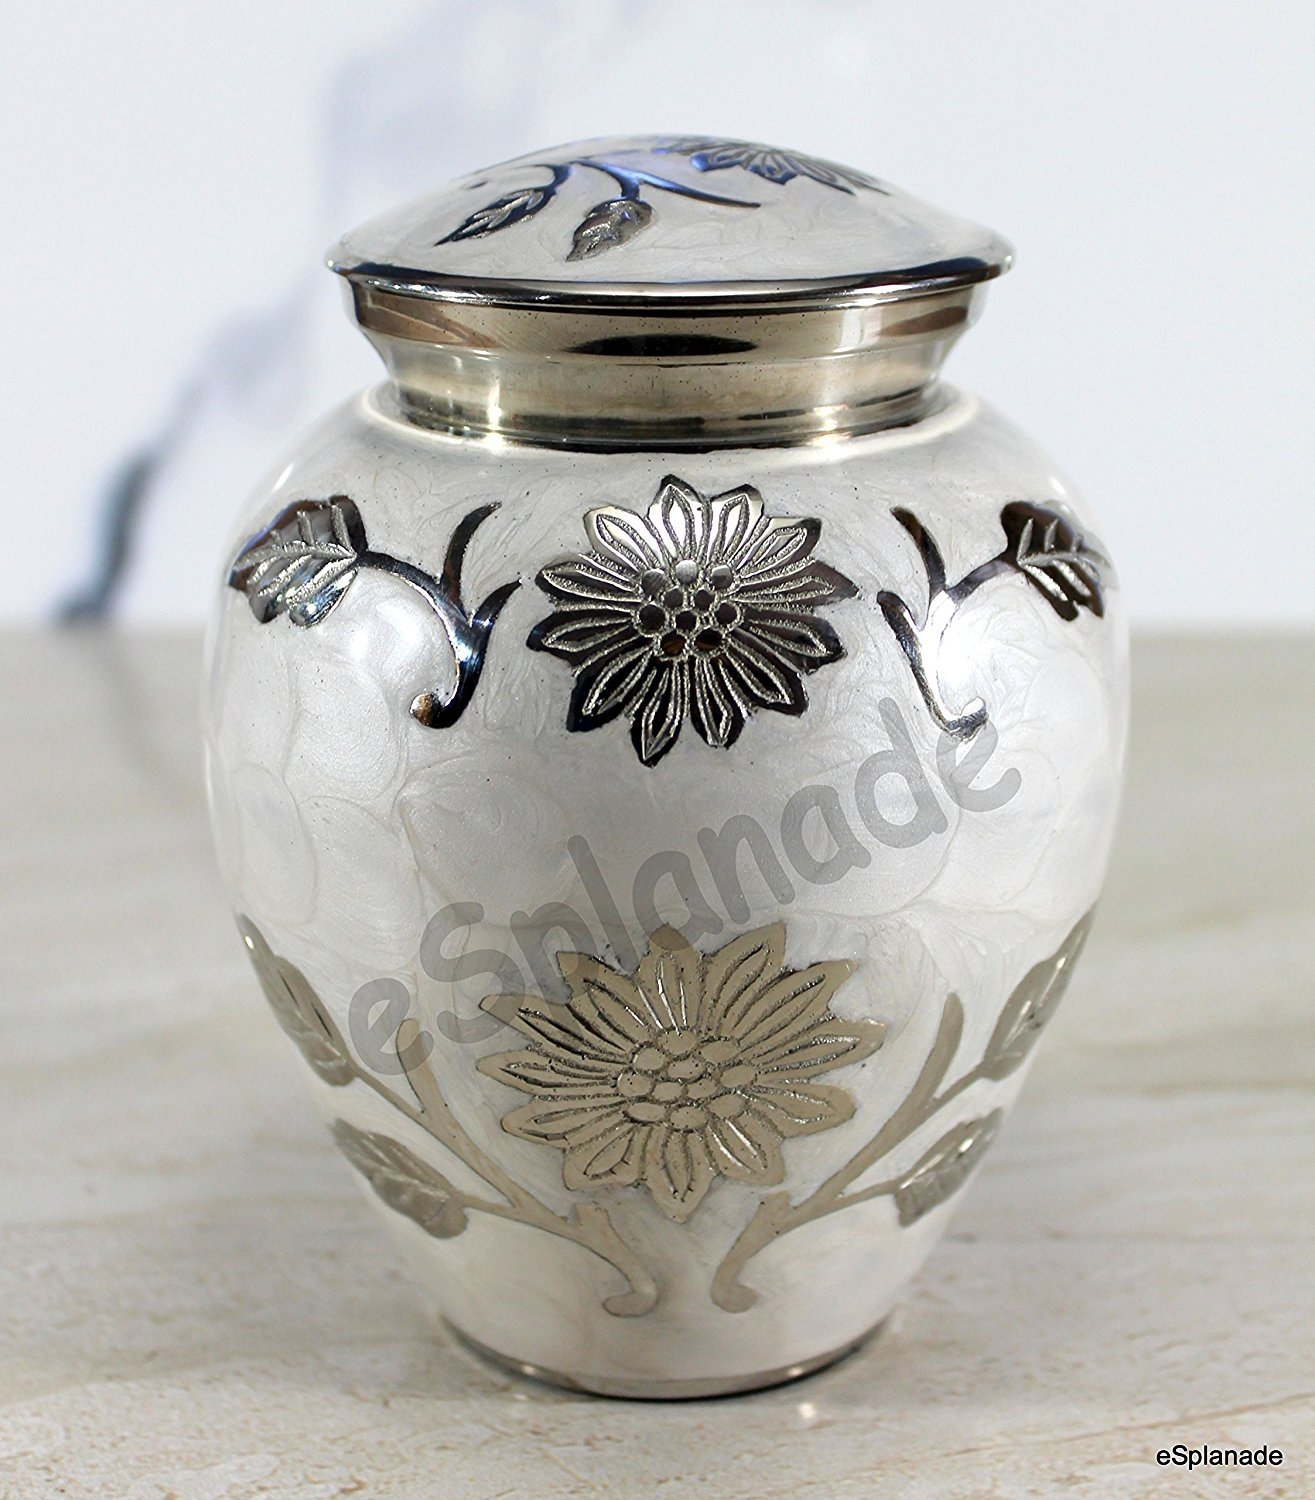 eSplanade Cremation urn Memorial Container Jar Pot | Metal Urns | Burial Urns | Brass Urns. StonKraft